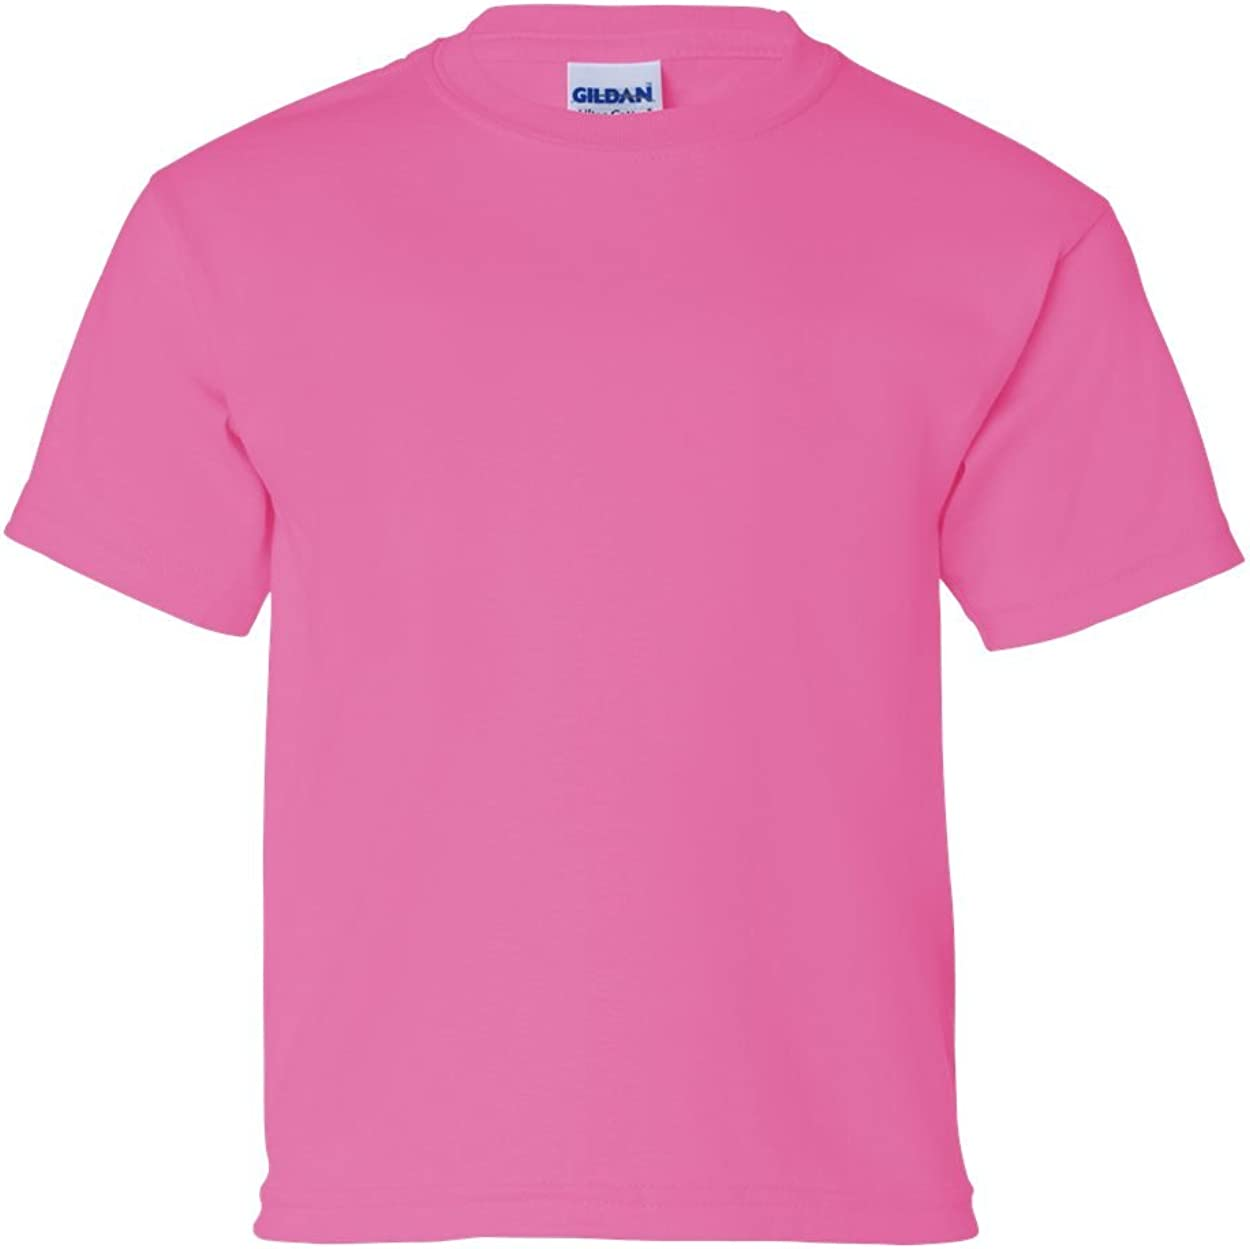 Cotton T-Shirt (G200B) Safety Pink, L (Pack of 12)